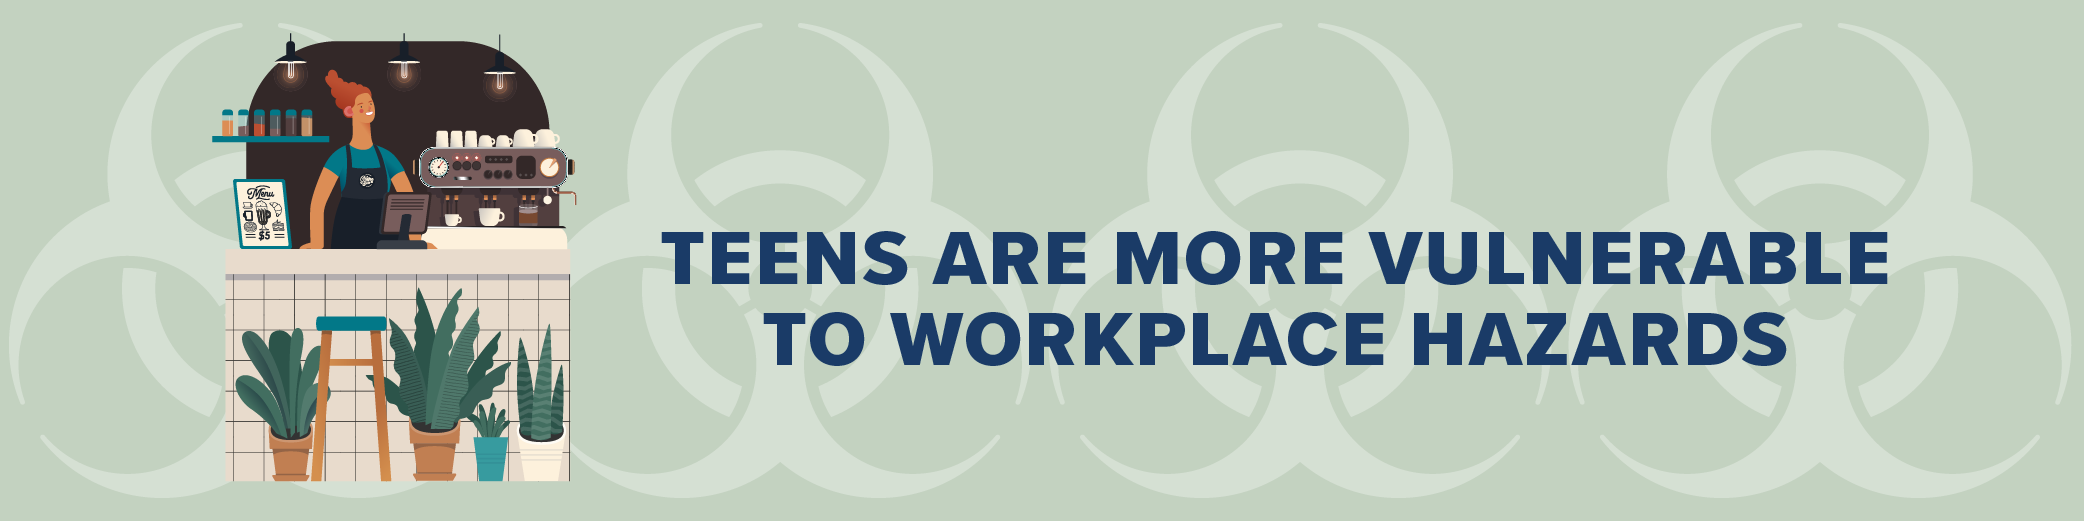 Teens Are More Vulnerable to Workplace Hazards